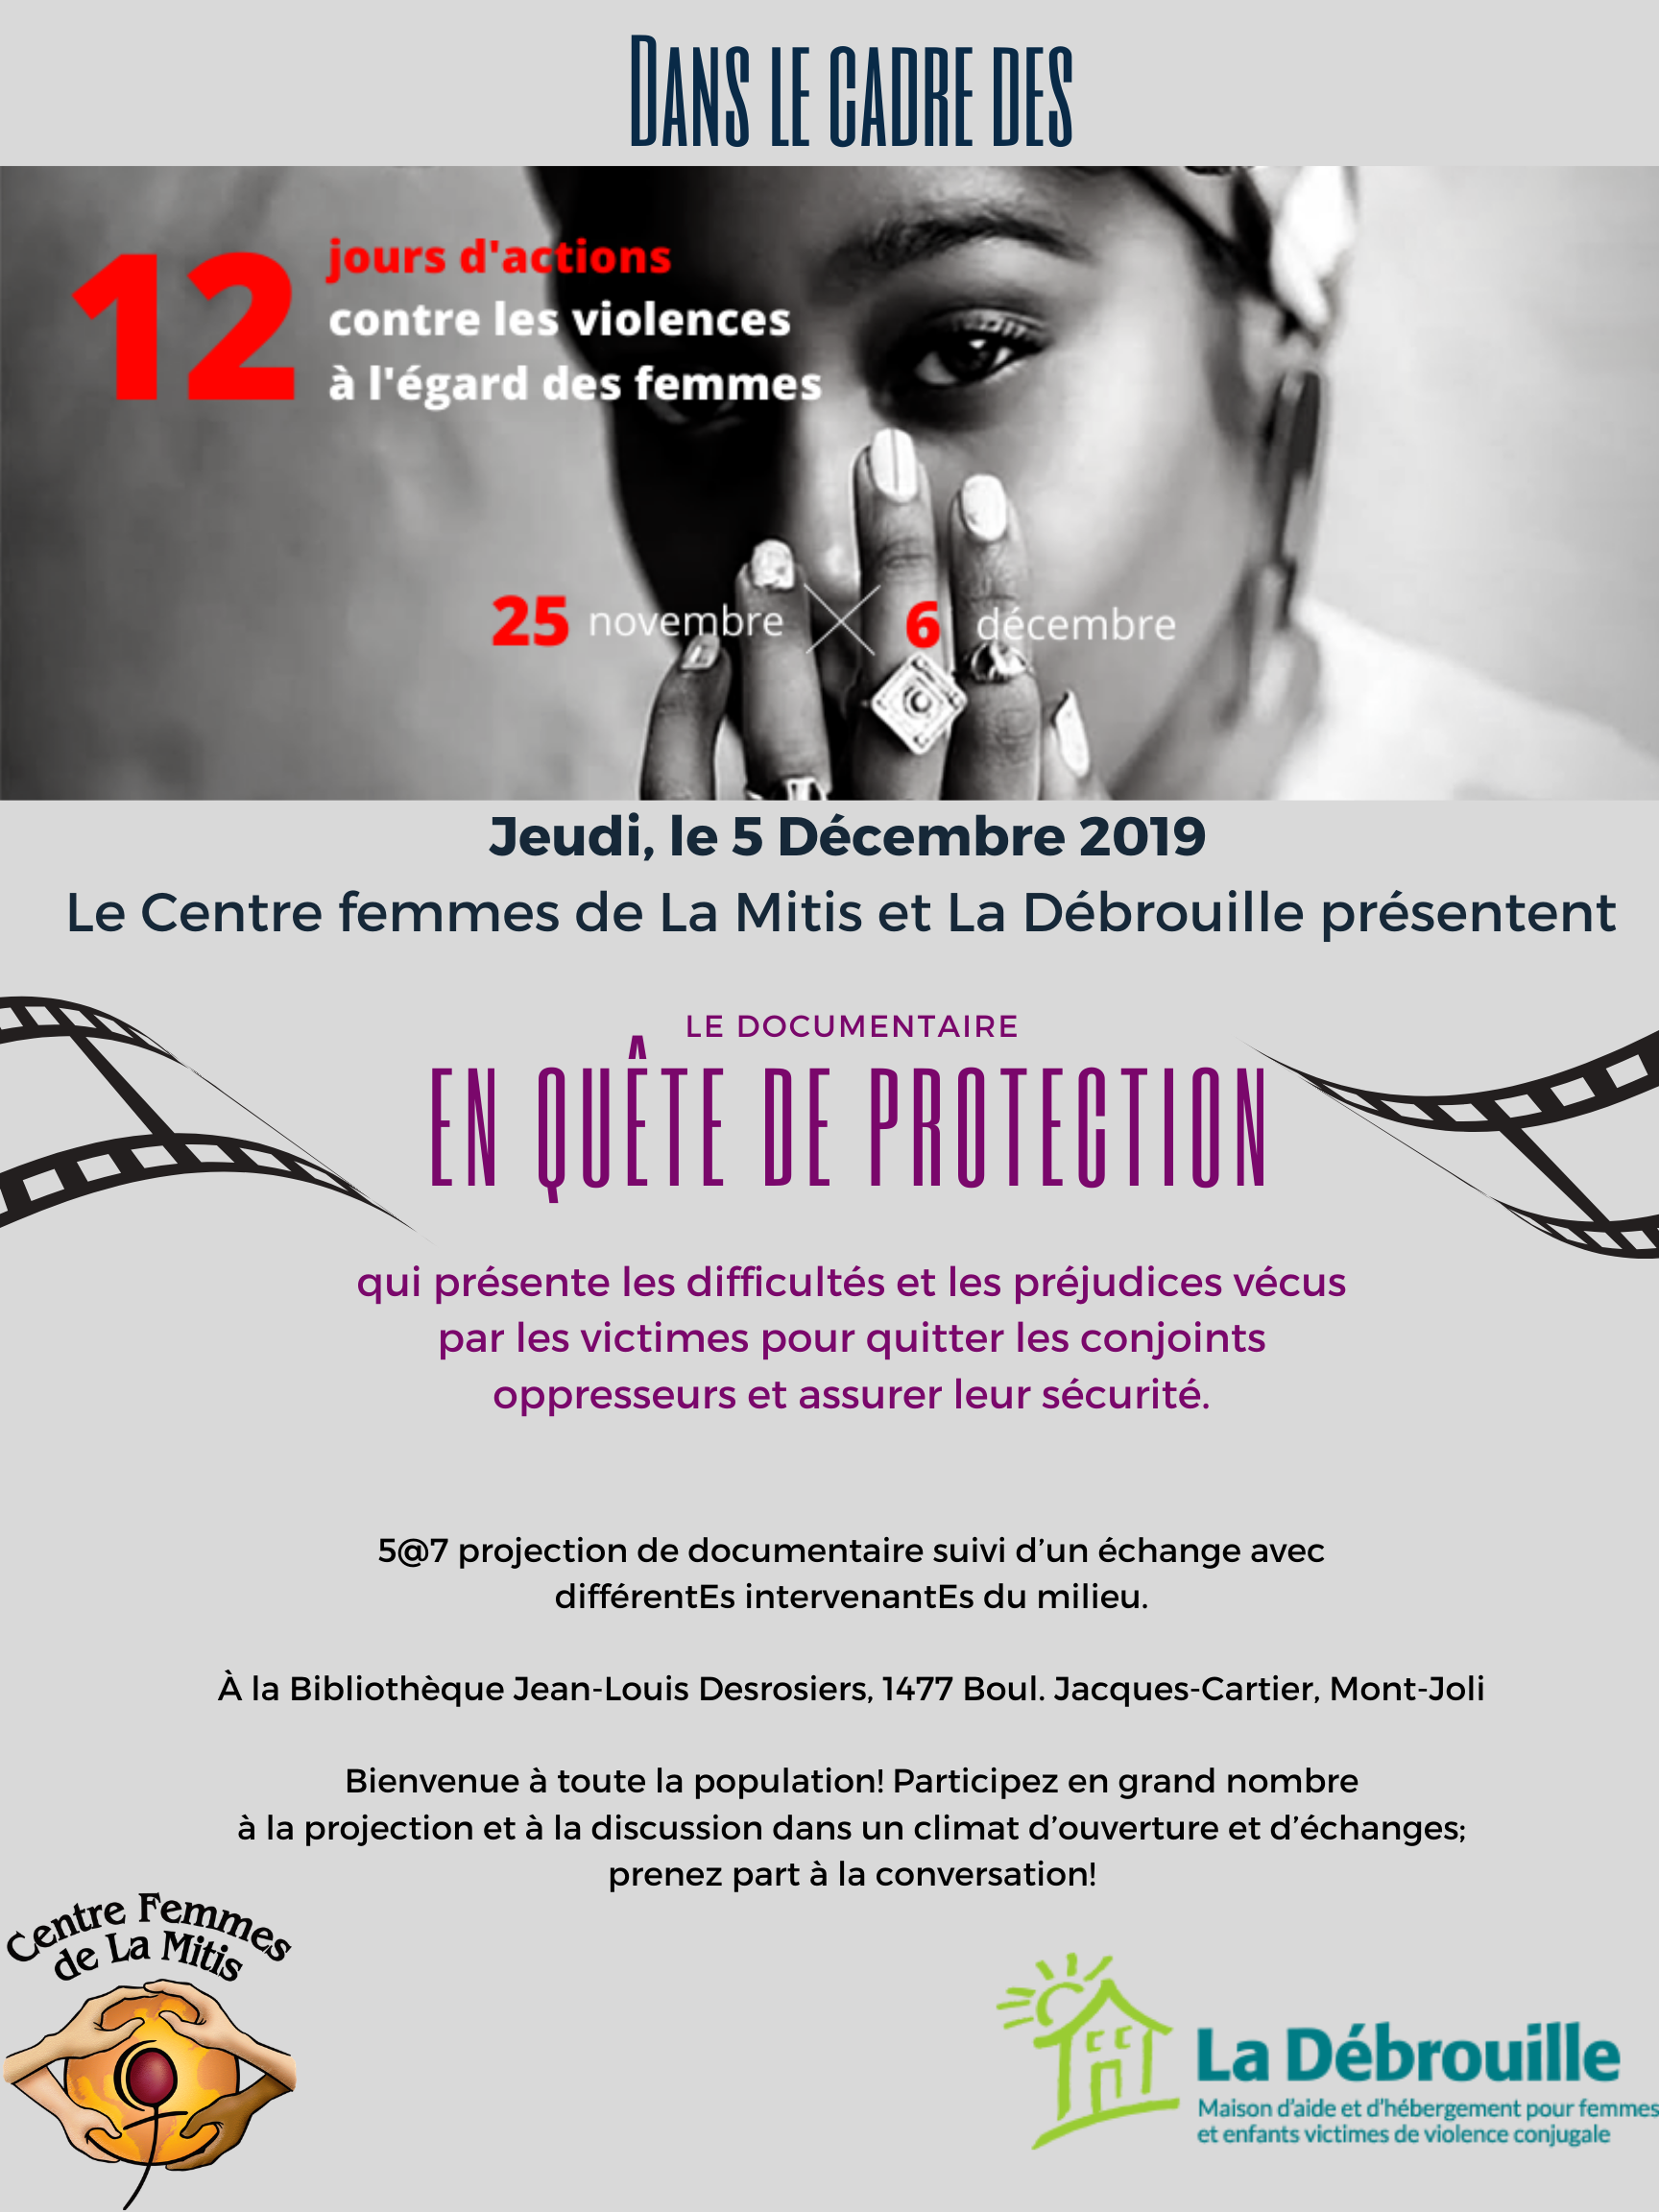 Projection documentaire en quête de protection